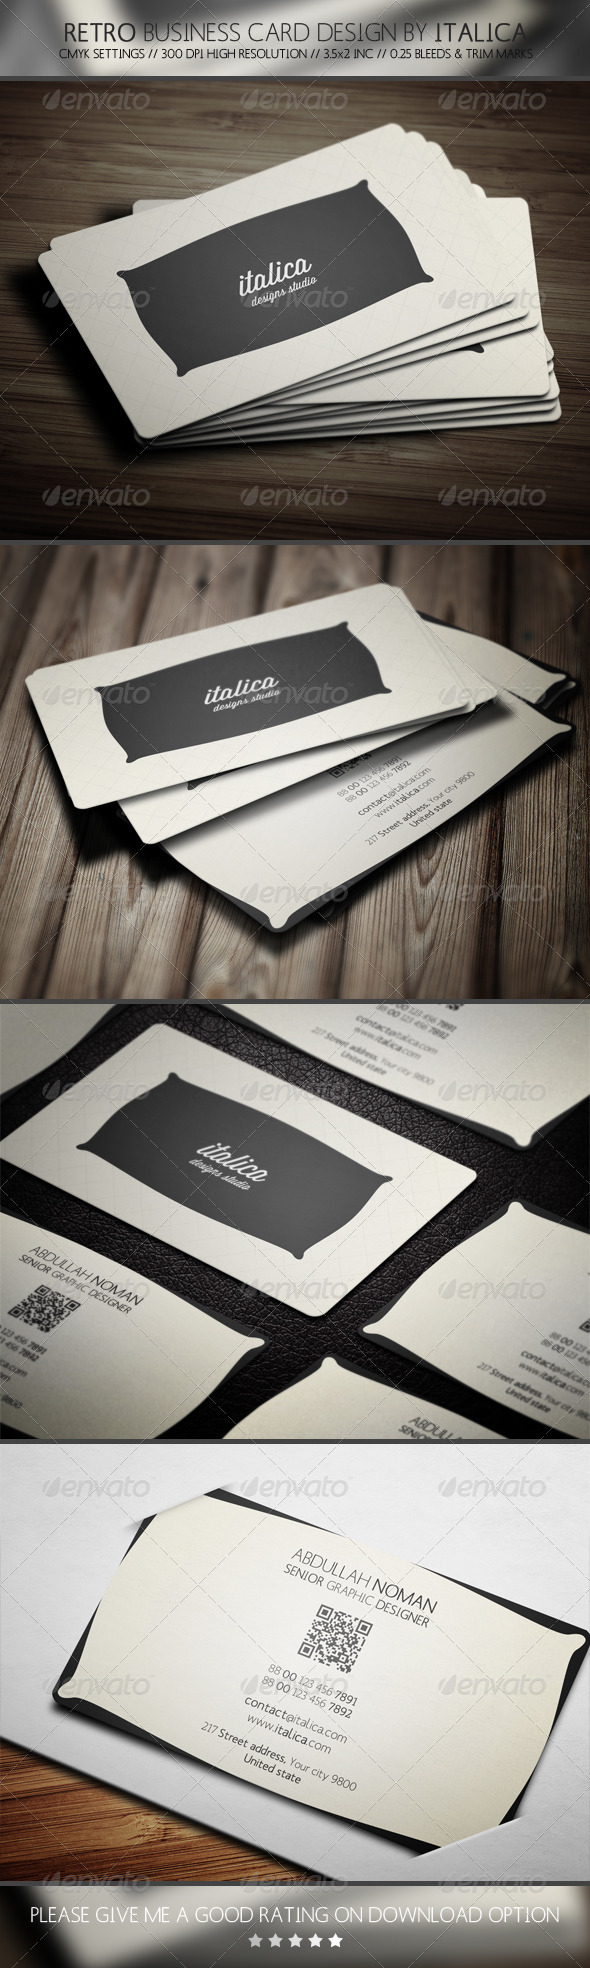 GraphicRiver Retro Business Card Design by Italica 5760105